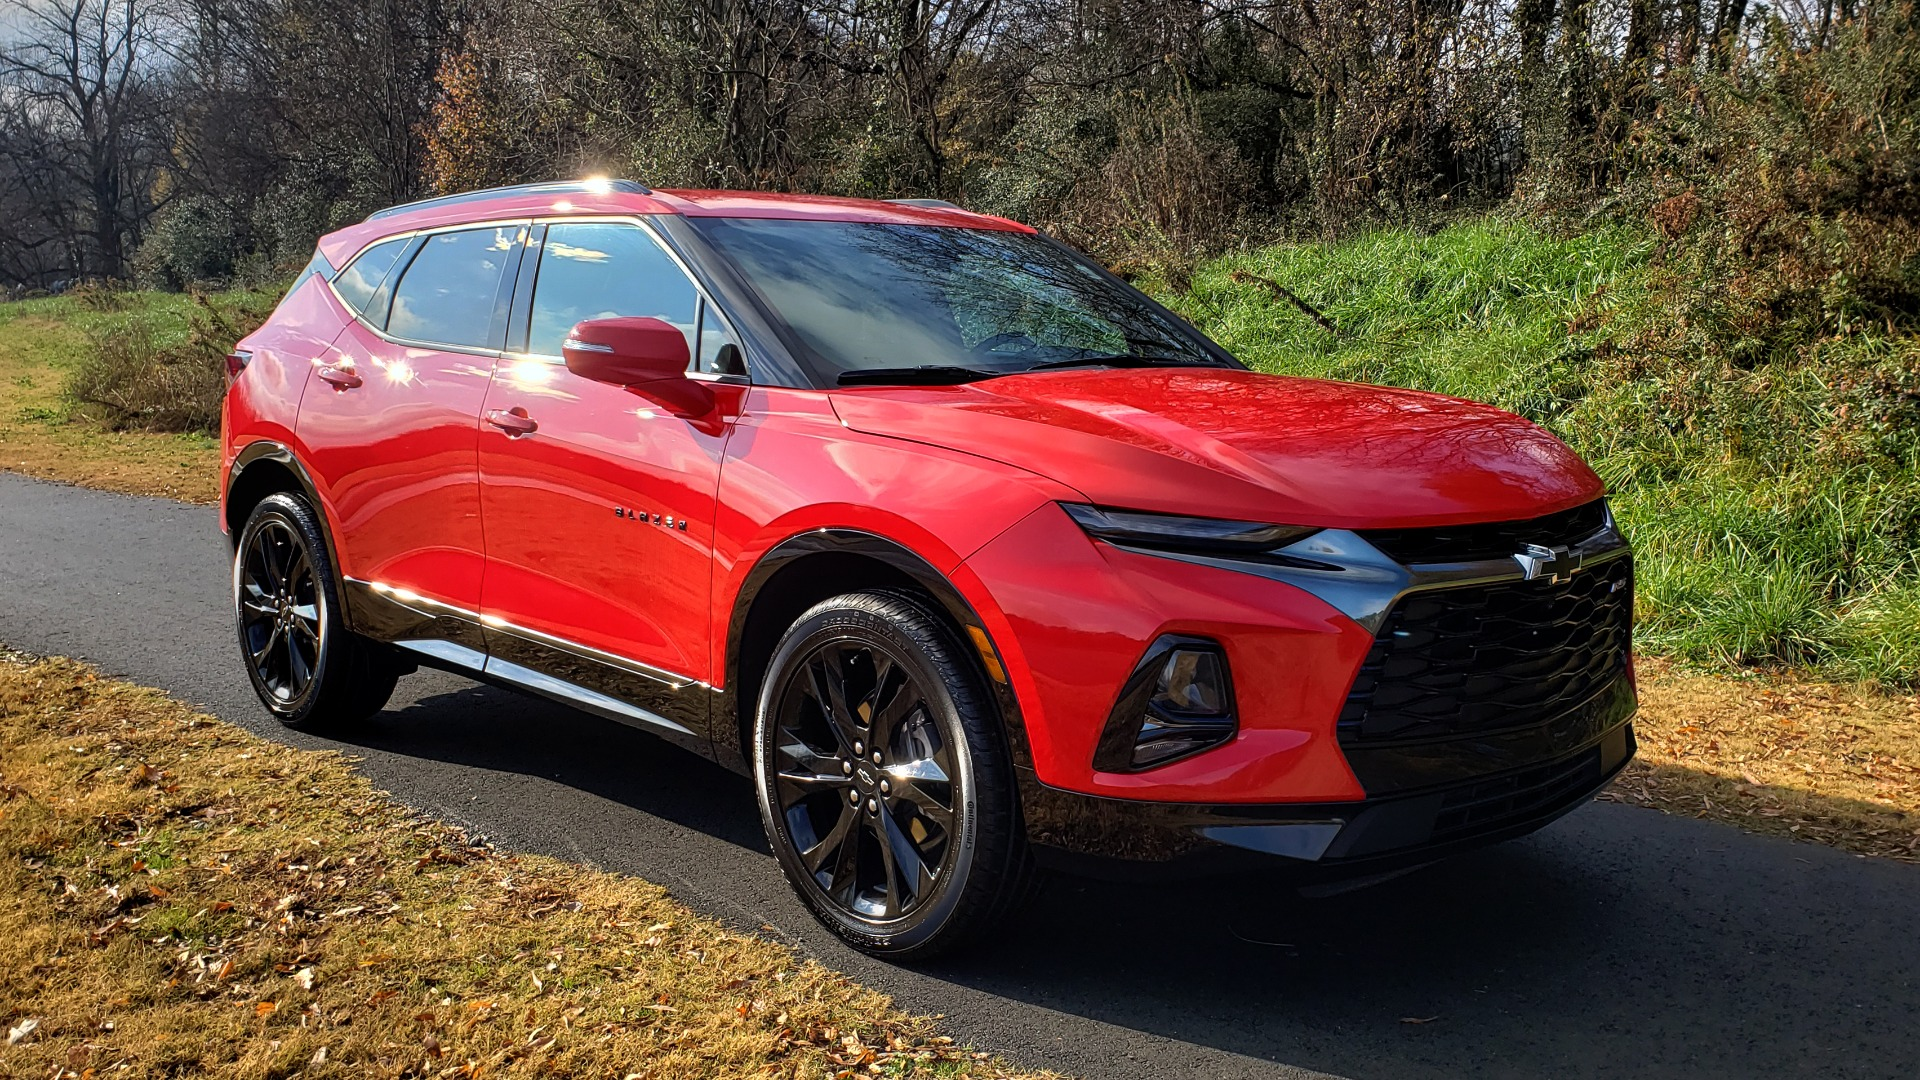 Used 2020 Chevrolet BLAZER RS / 3.6L V6 / 9-SPD AUTO / NAV / BOSE / HTD STS / REARVIEW for sale Sold at Formula Imports in Charlotte NC 28227 5